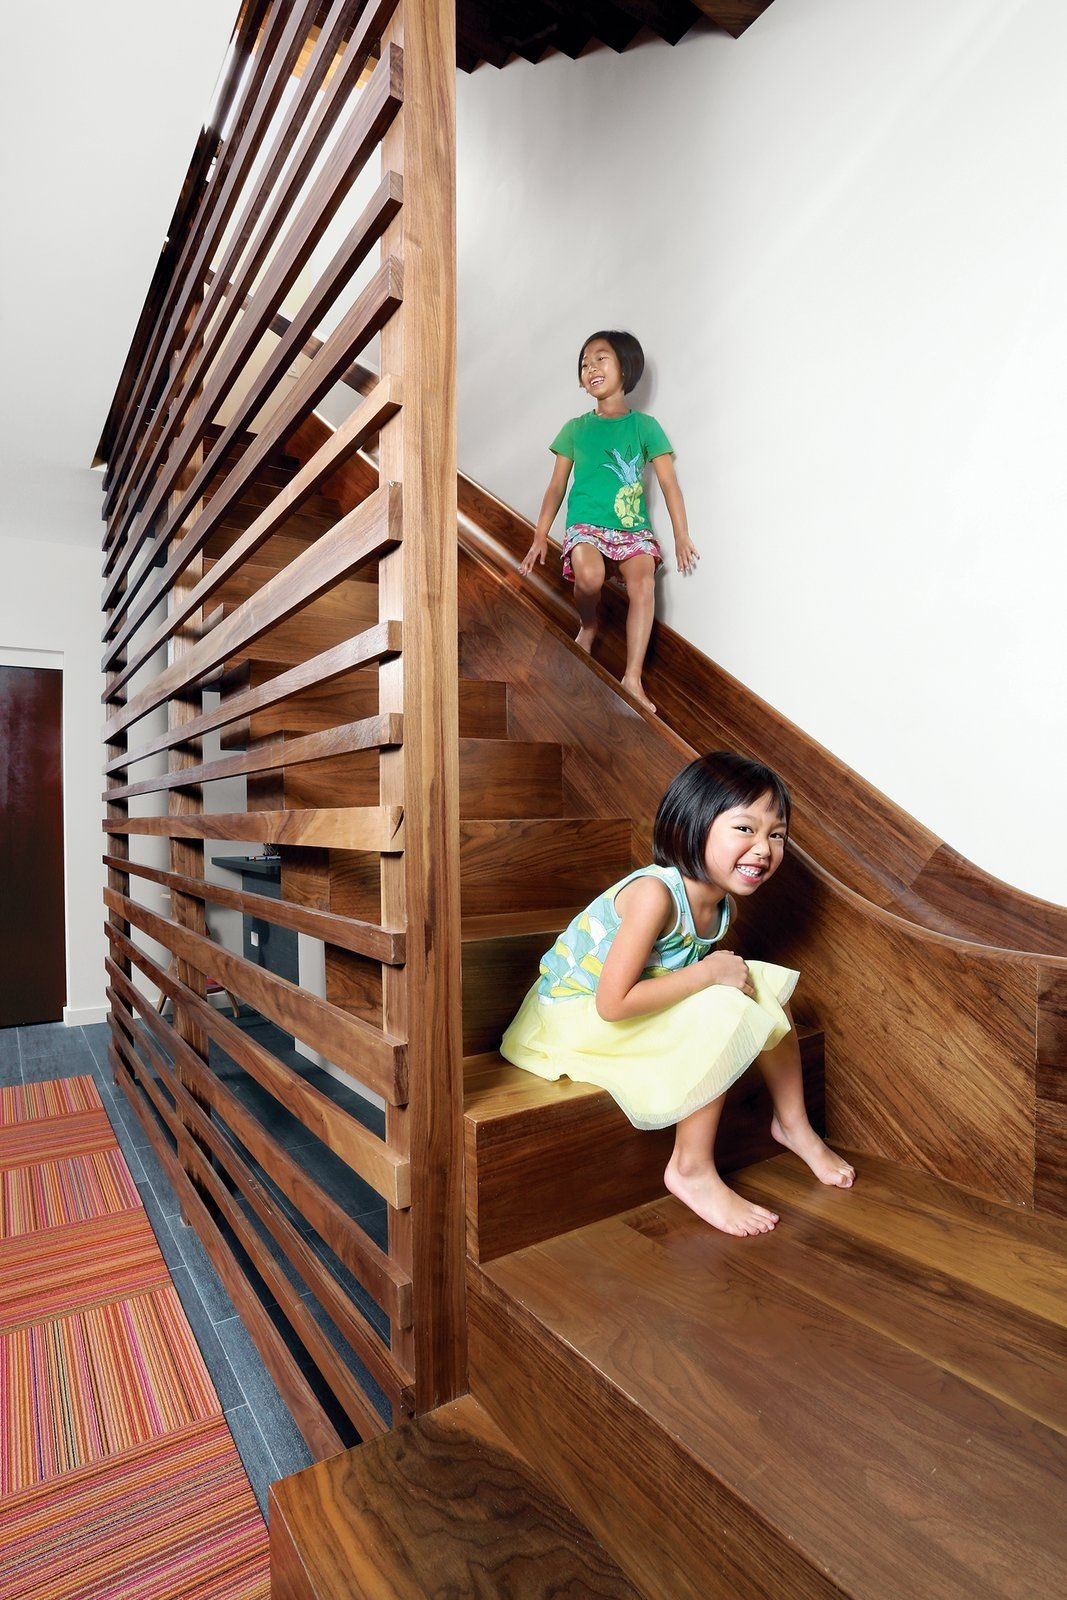 7 Cool Buildings With Stair Slides And Happy Kids | Spiral Staircase With Slide | Modern | 1930'S | Interior | Cool | Stainless Steel Spiral